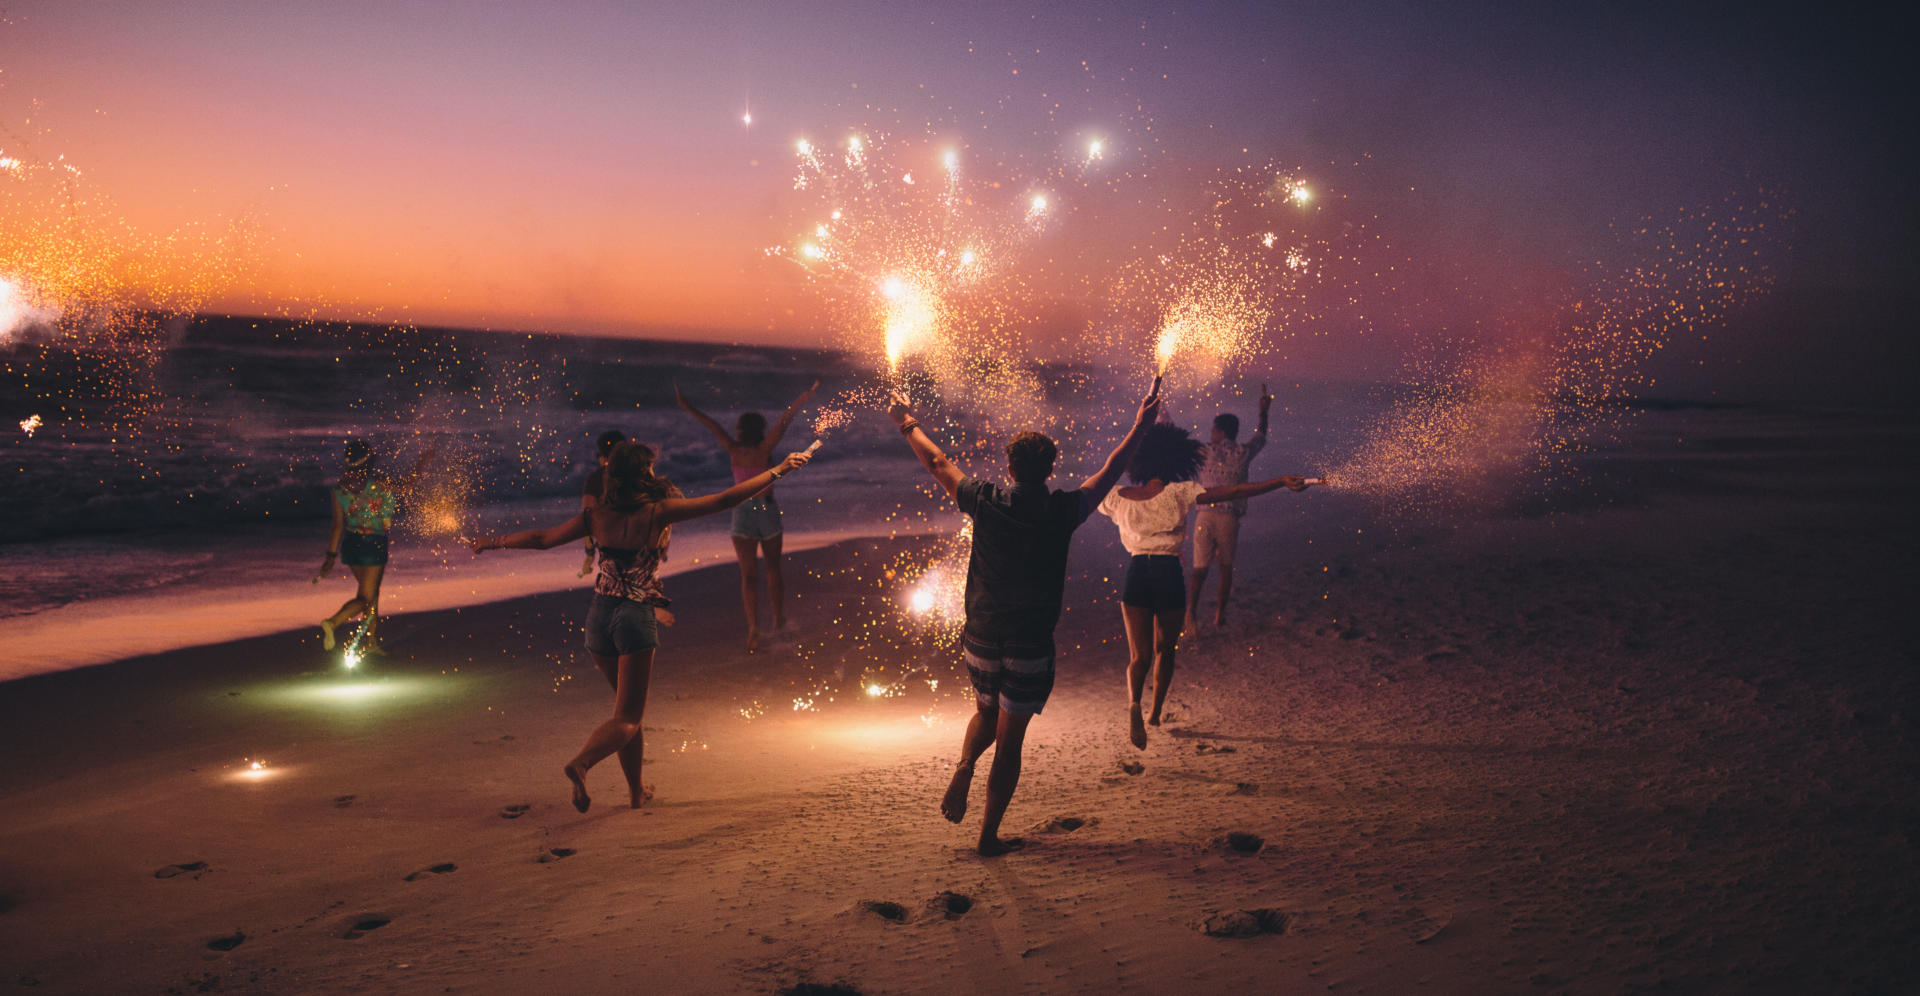 friend running with fireworks on a beach